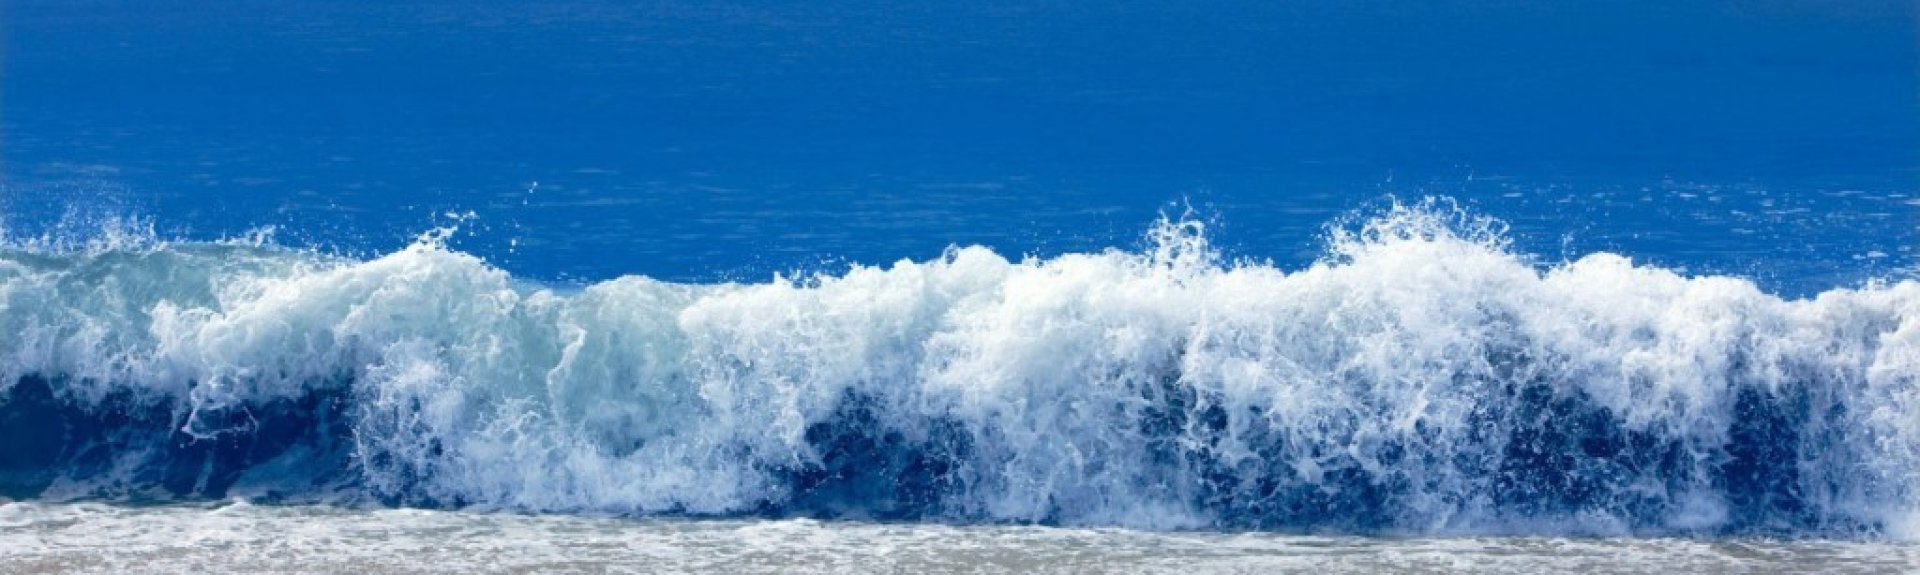 148_1crashing_wave_4732_blue-1024×672